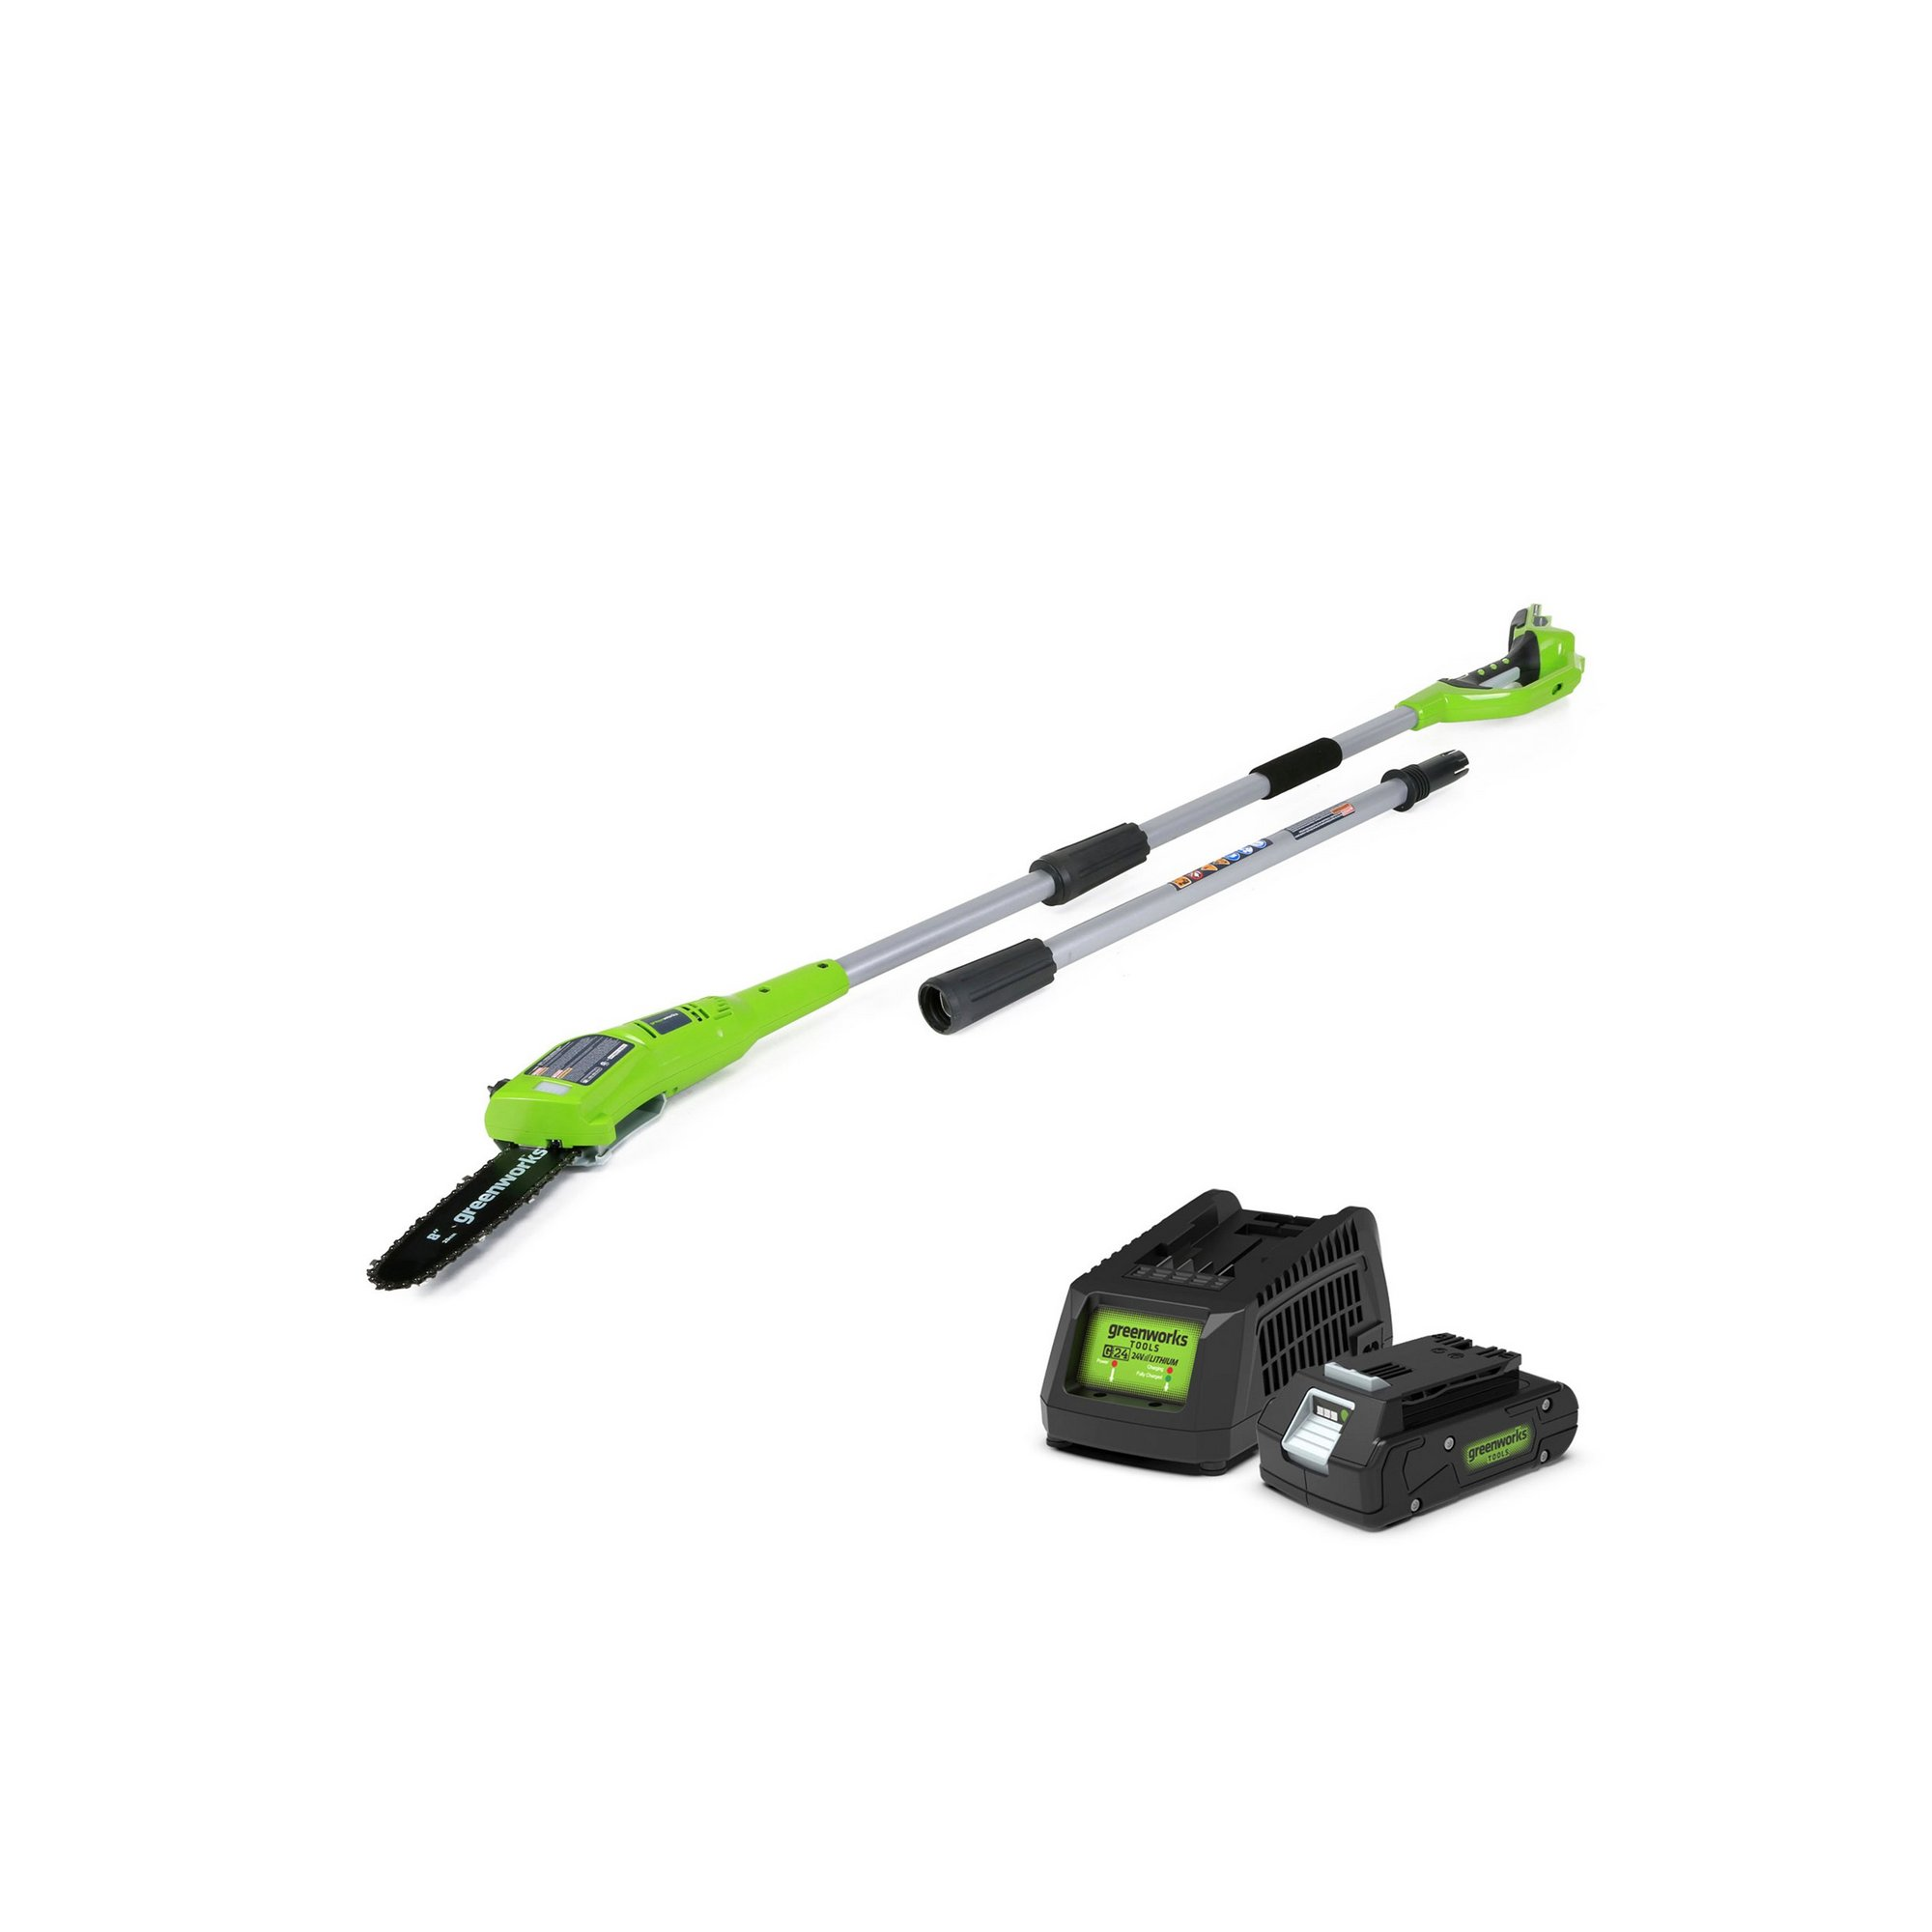 Image of Greenworks 24v 20cm Cordless Pole Saw with 2ah Battery and Charger